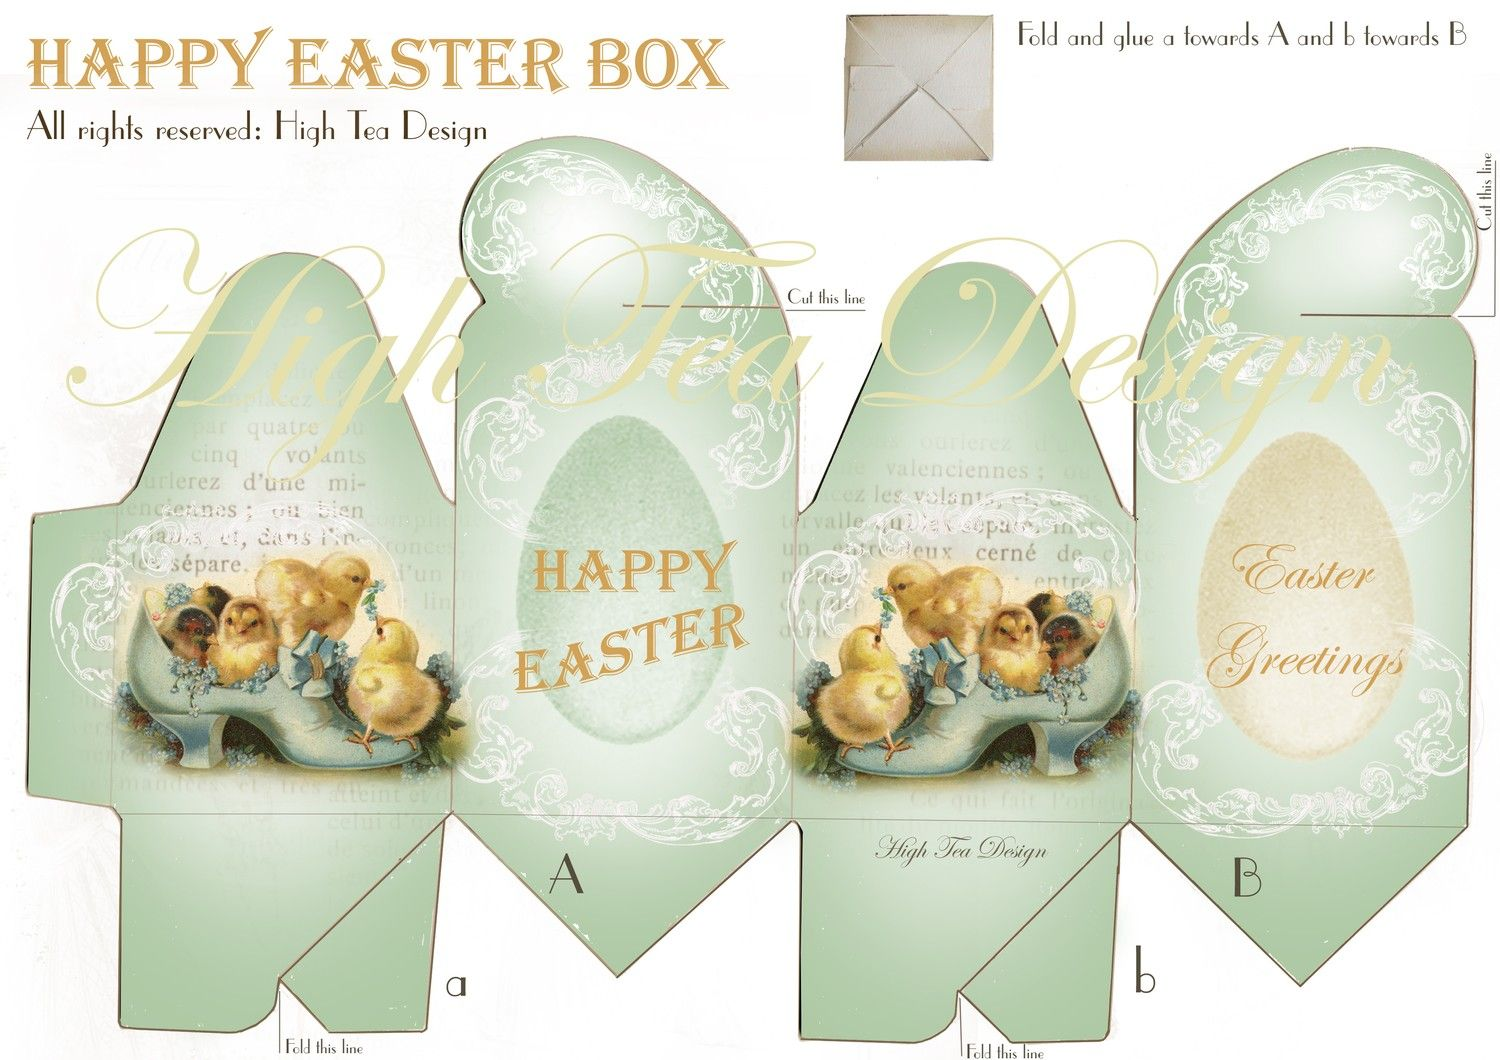 Image detail for wonderful happy easter box vintage style image detail for wonderful happy easter box vintage style template holiday negle Choice Image